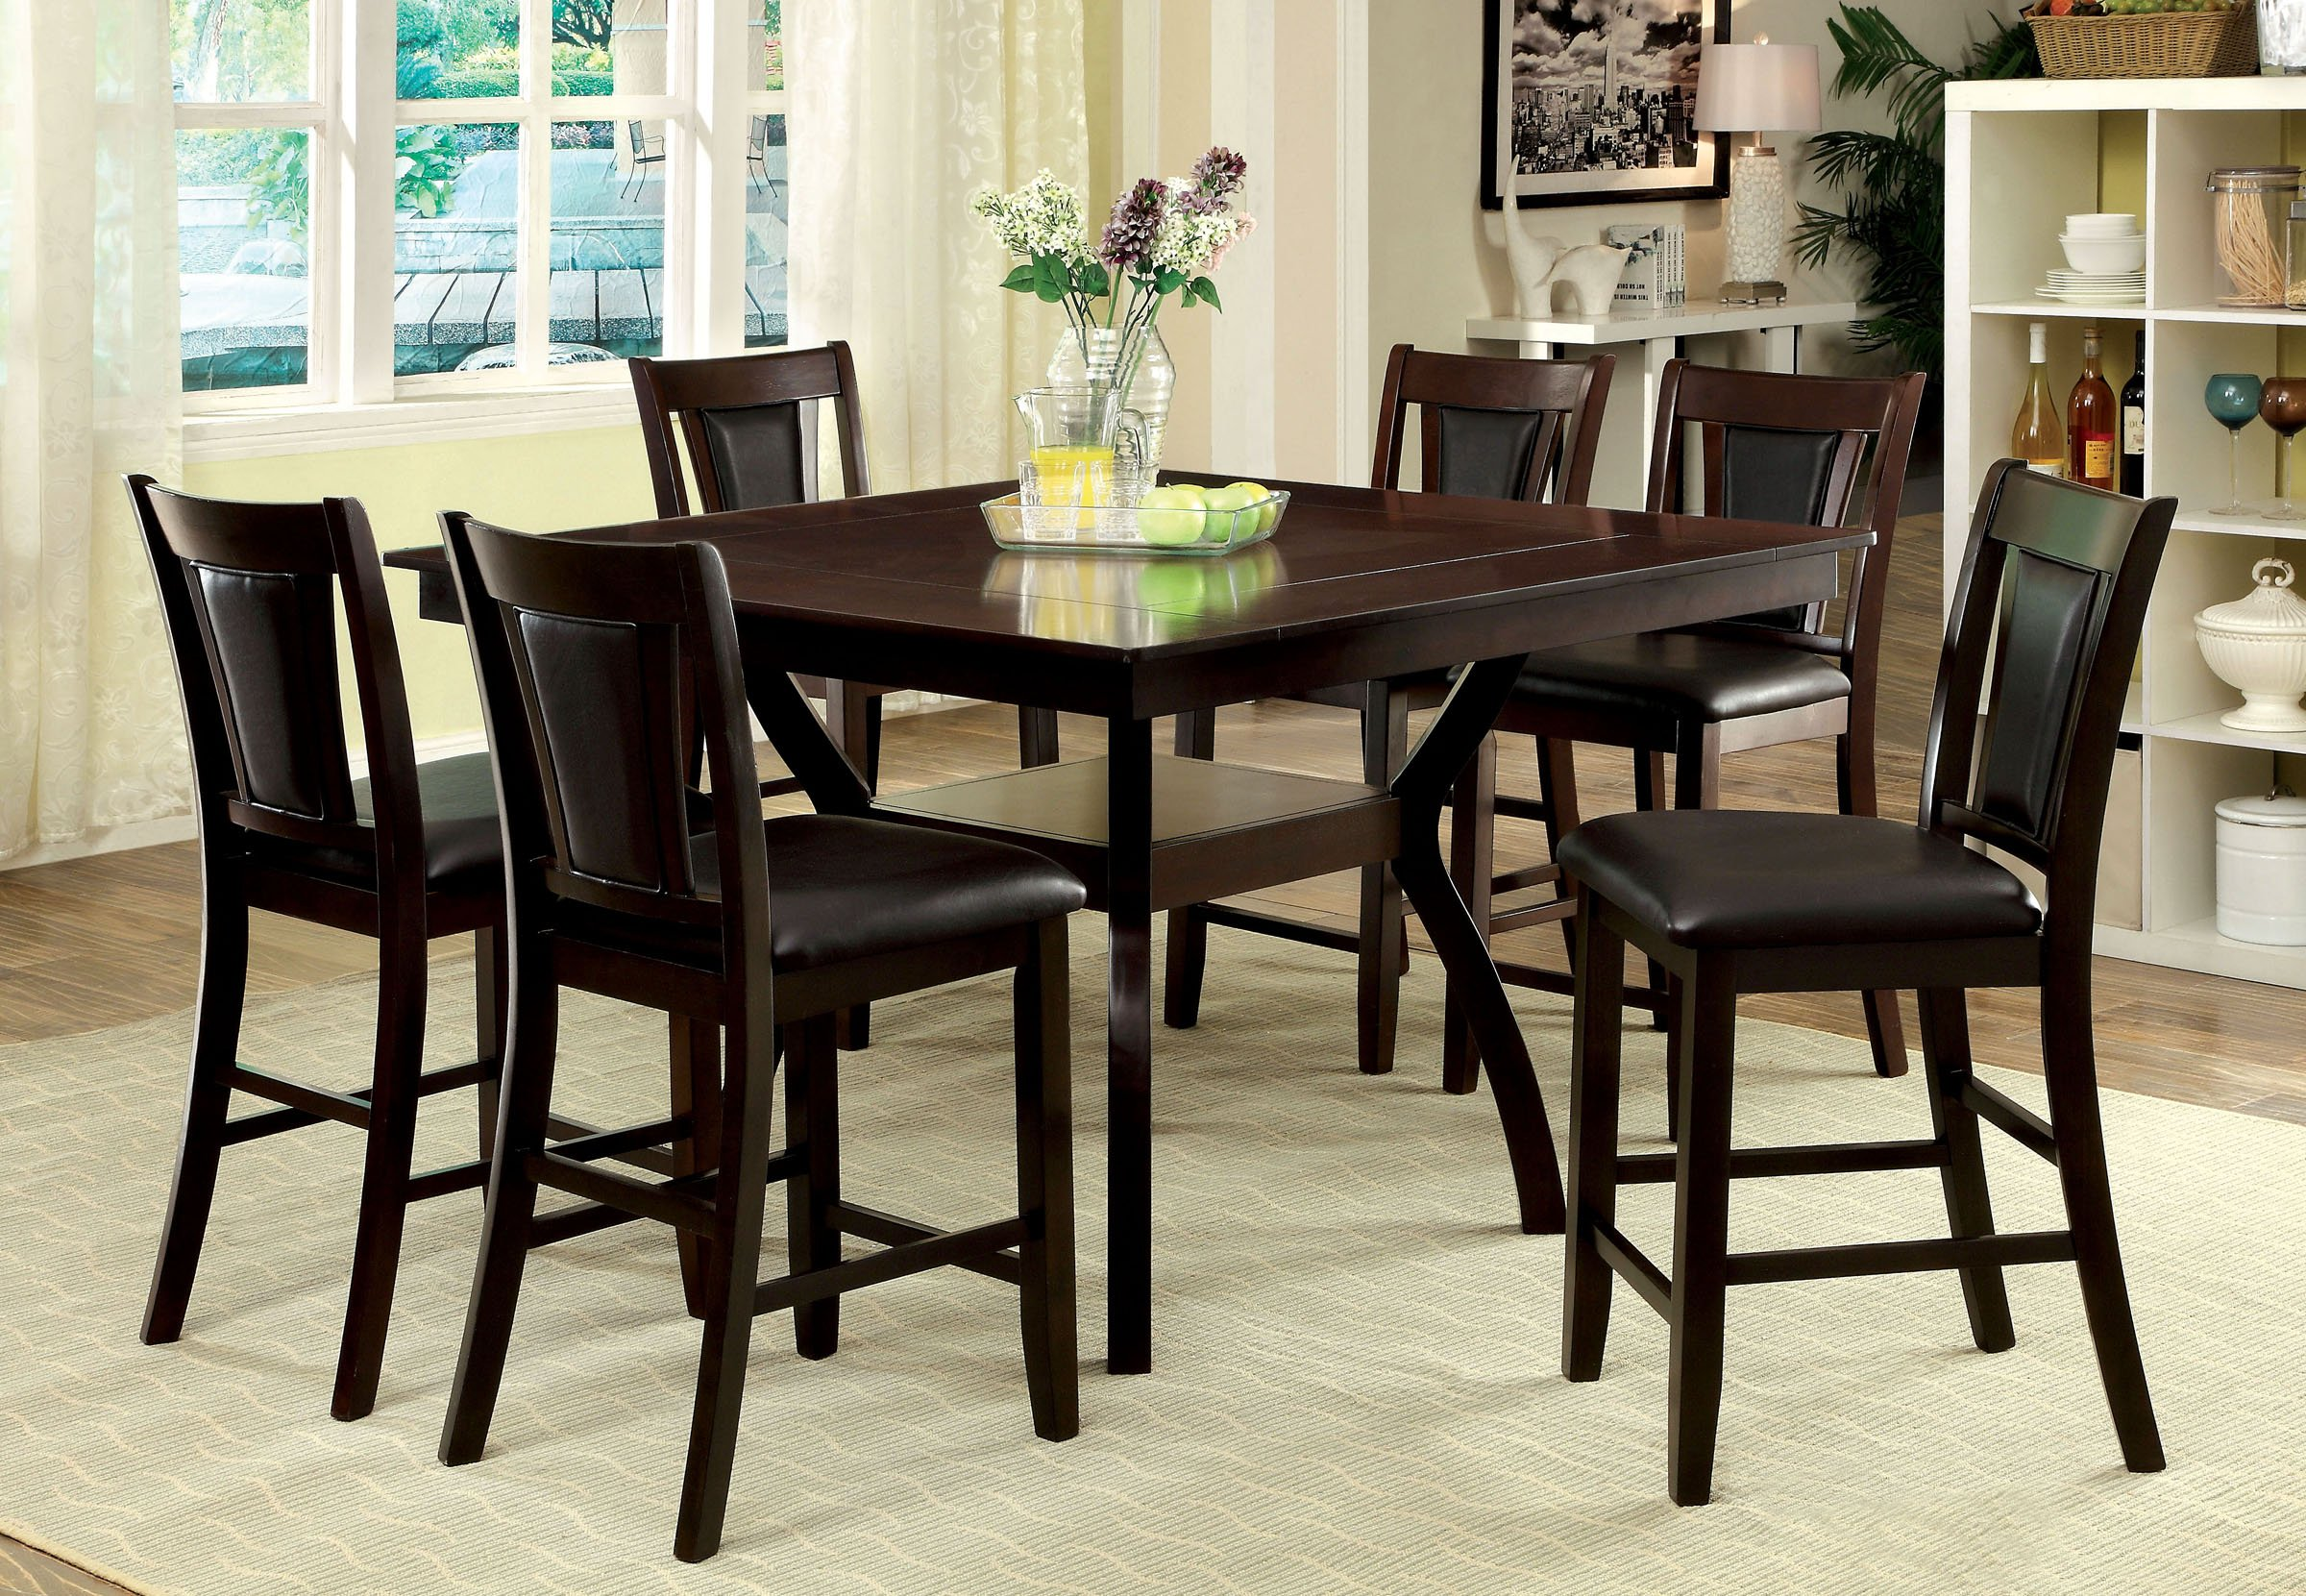 Dark Cherry 5 Piece Counter Height Dining Set Brent RC  : Counter Height Dining Table Urban Brent Dark Cherry rcwilley image1 from www.rcwilley.com size 1800 x 1292 jpeg 99kB